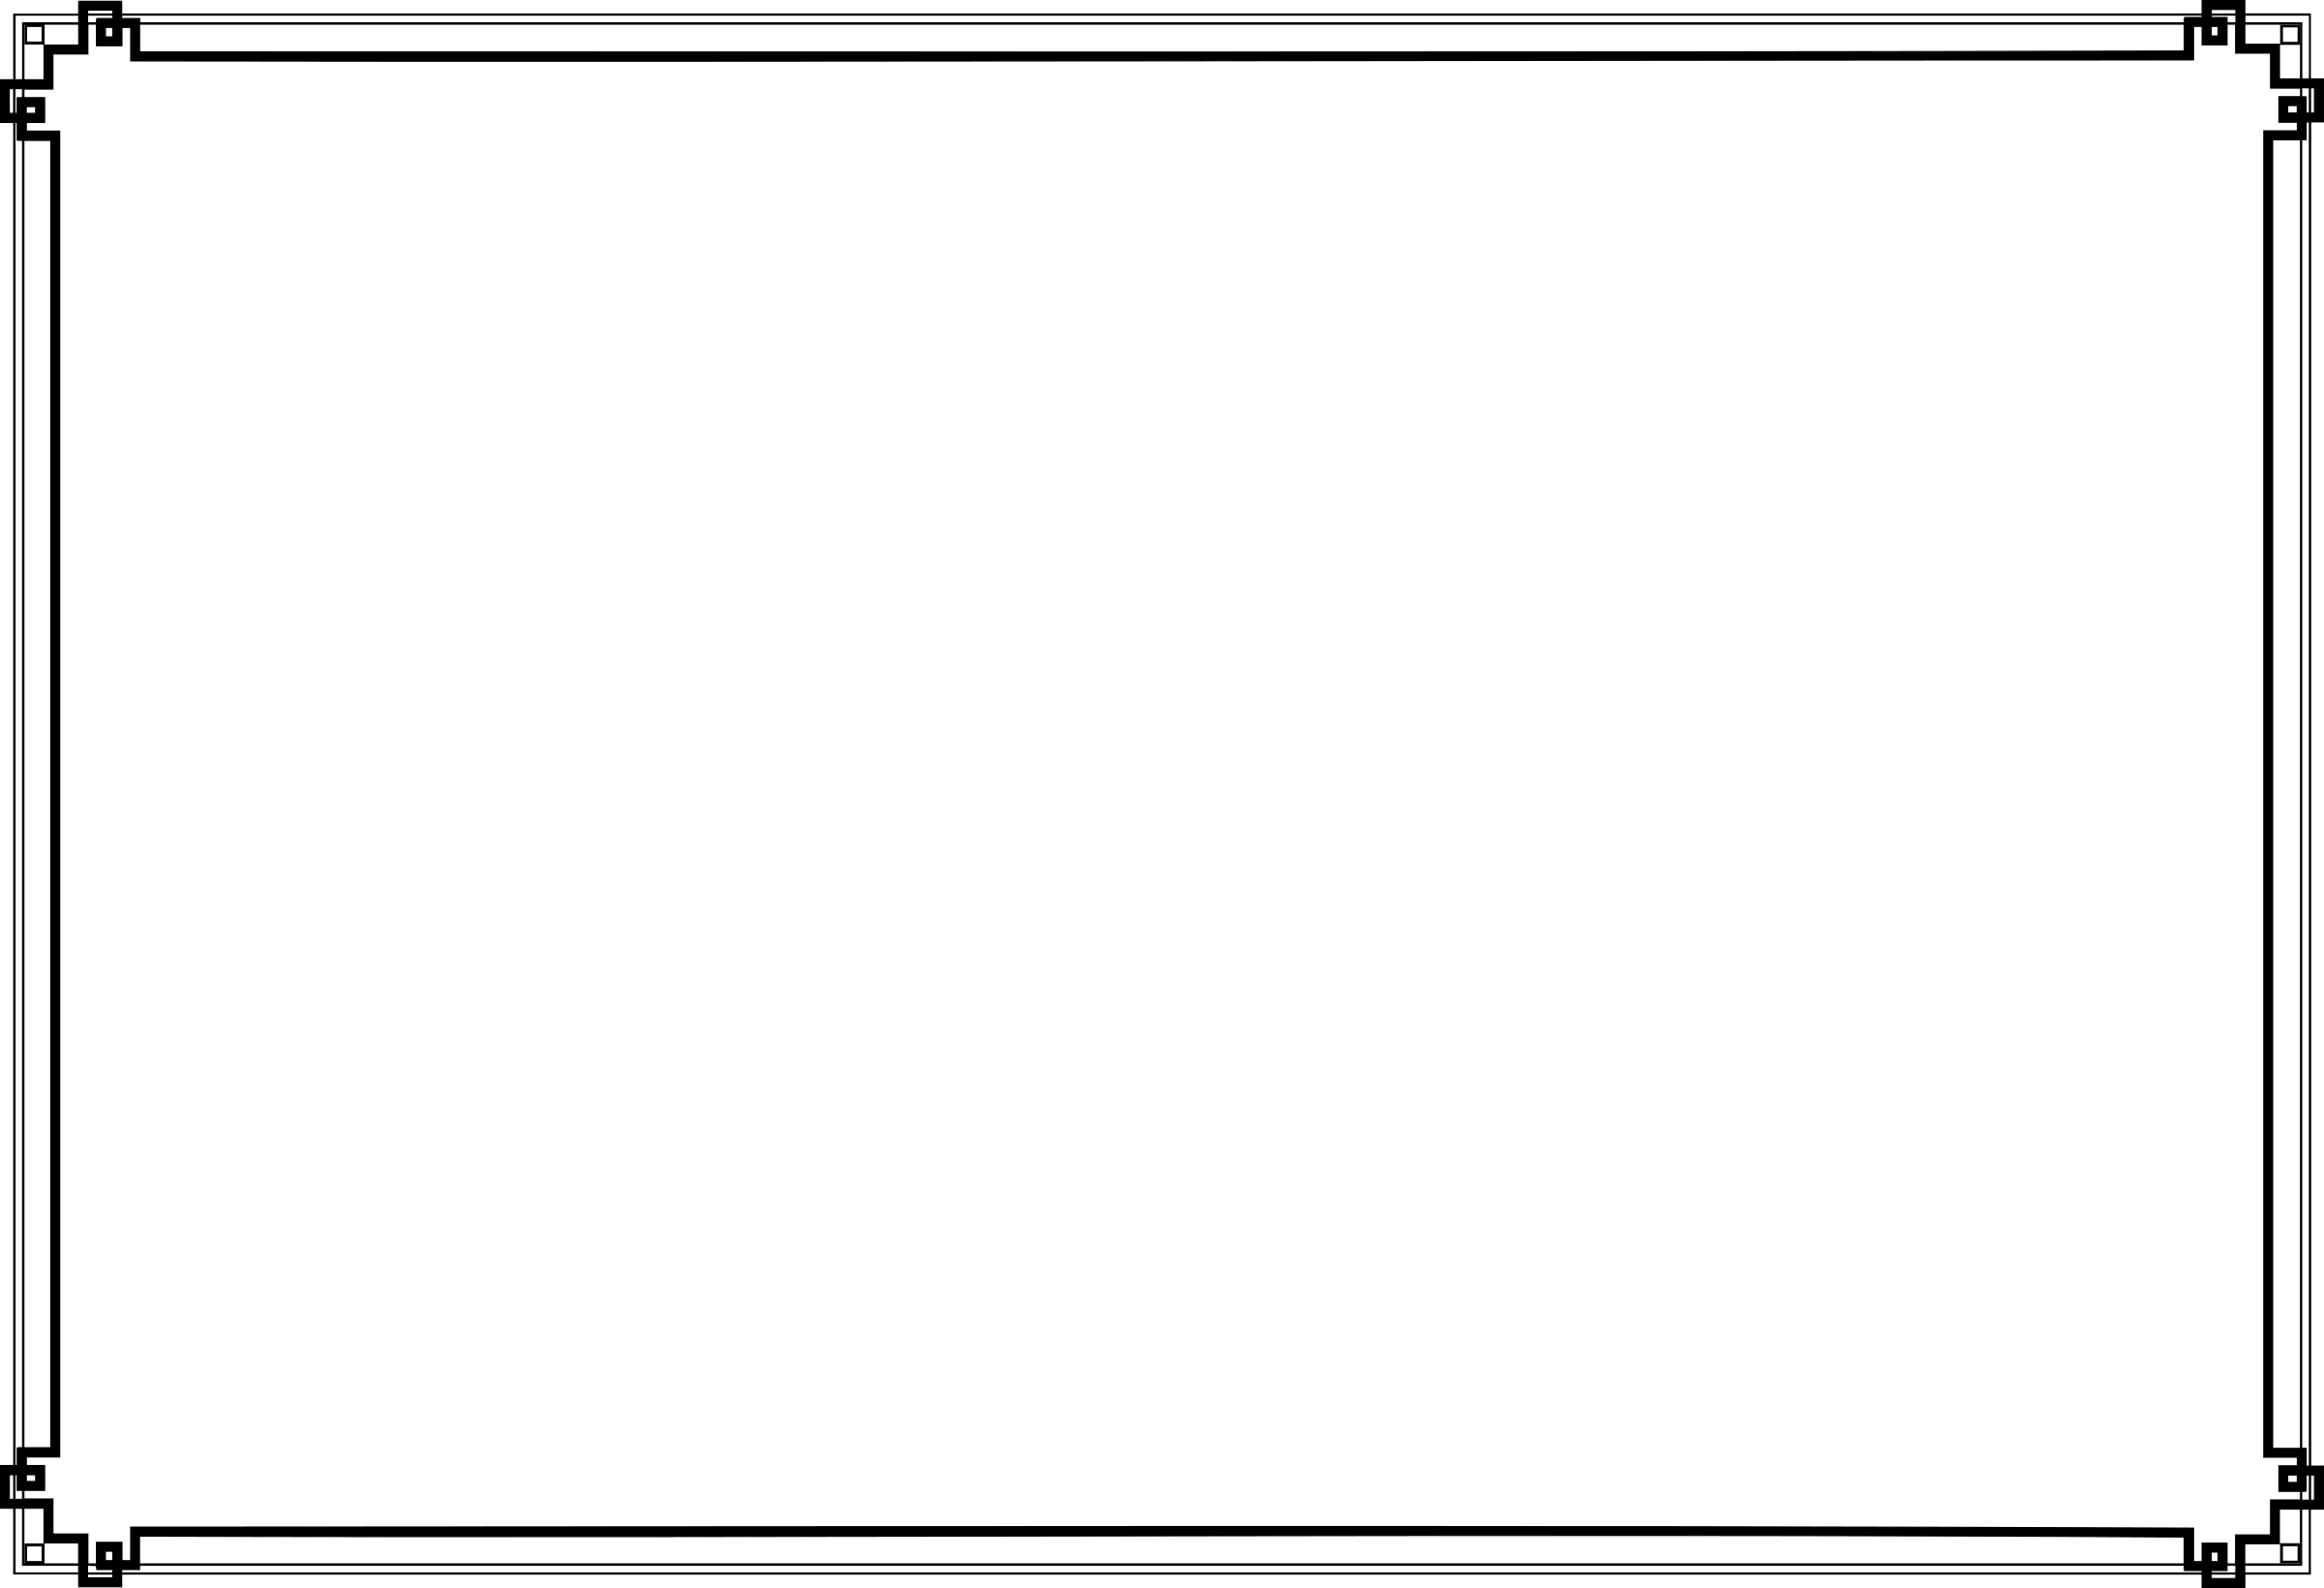 Transparent stickpng. Art deco border png